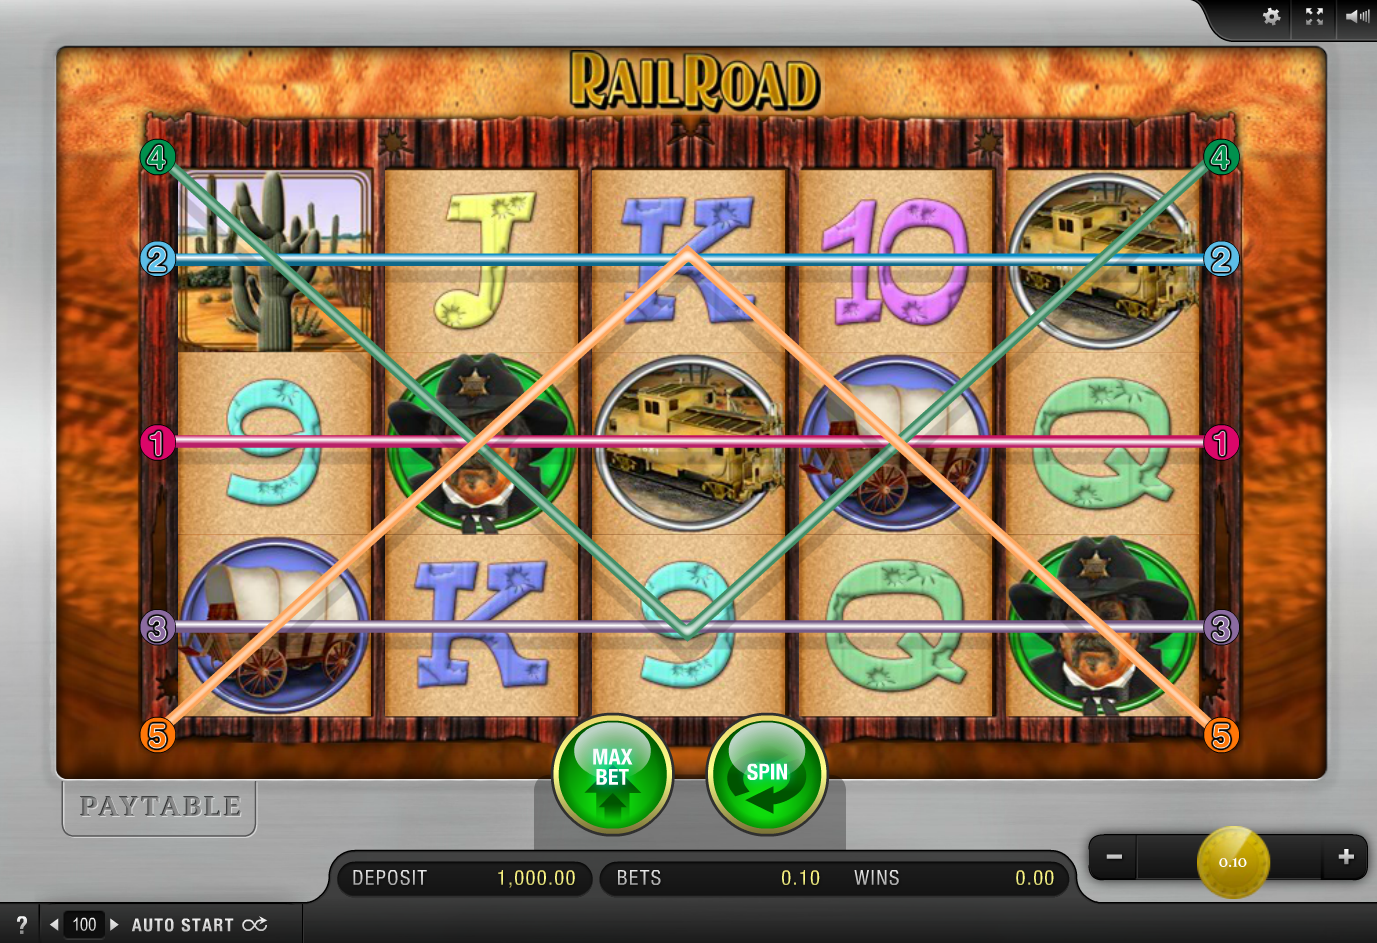 Railroad - Casumo Casino